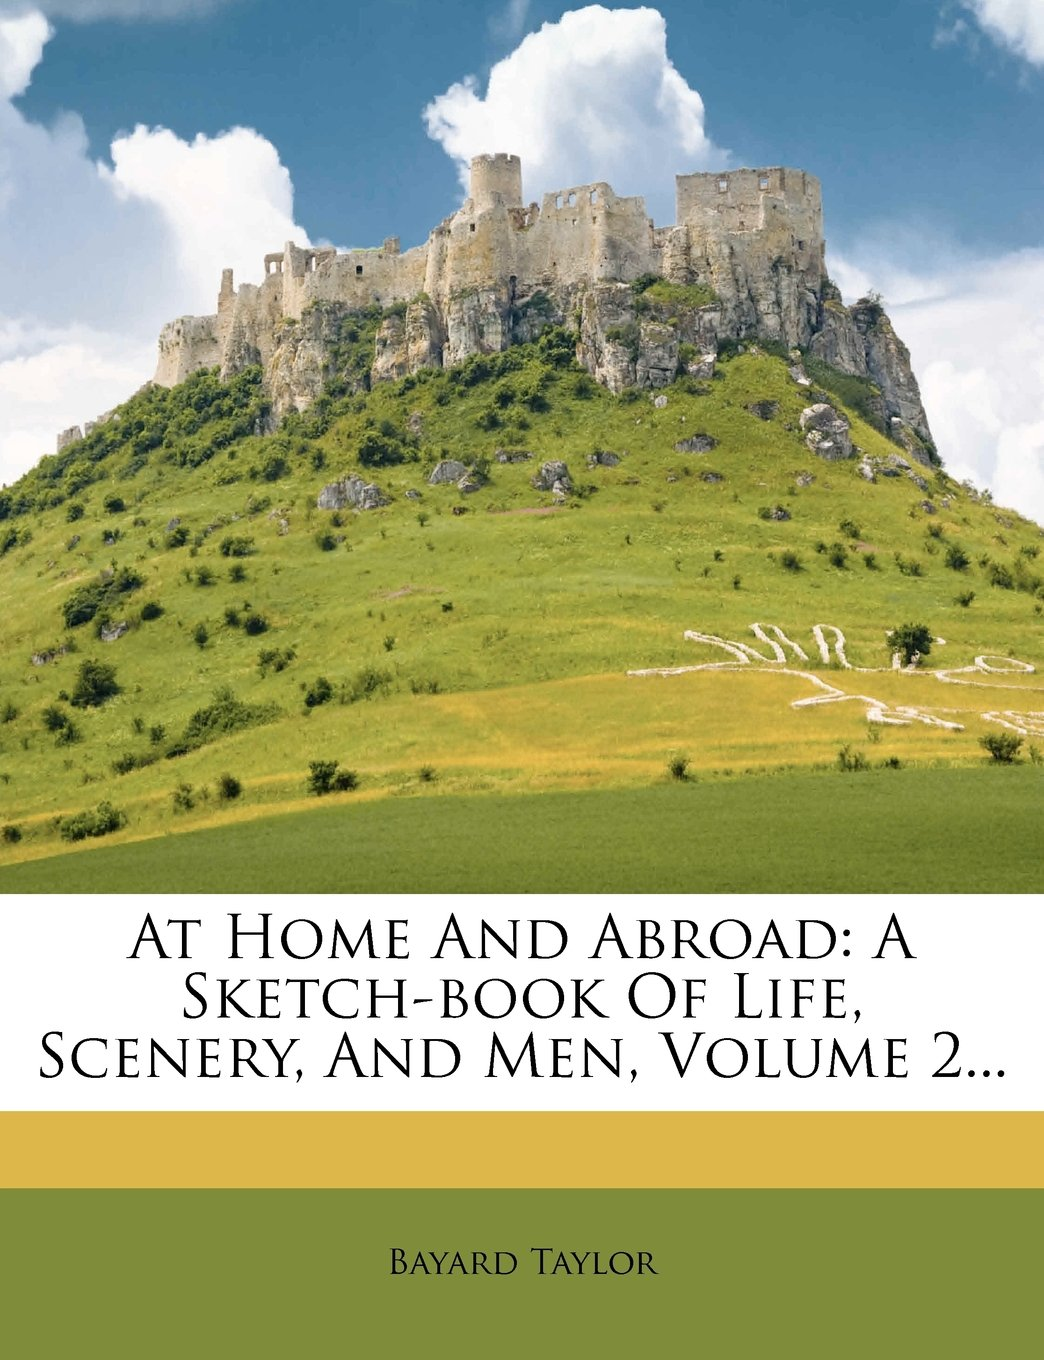 At Home And Abroad: A Sketch-book Of Life, Scenery, And Men, Volume 2... PDF